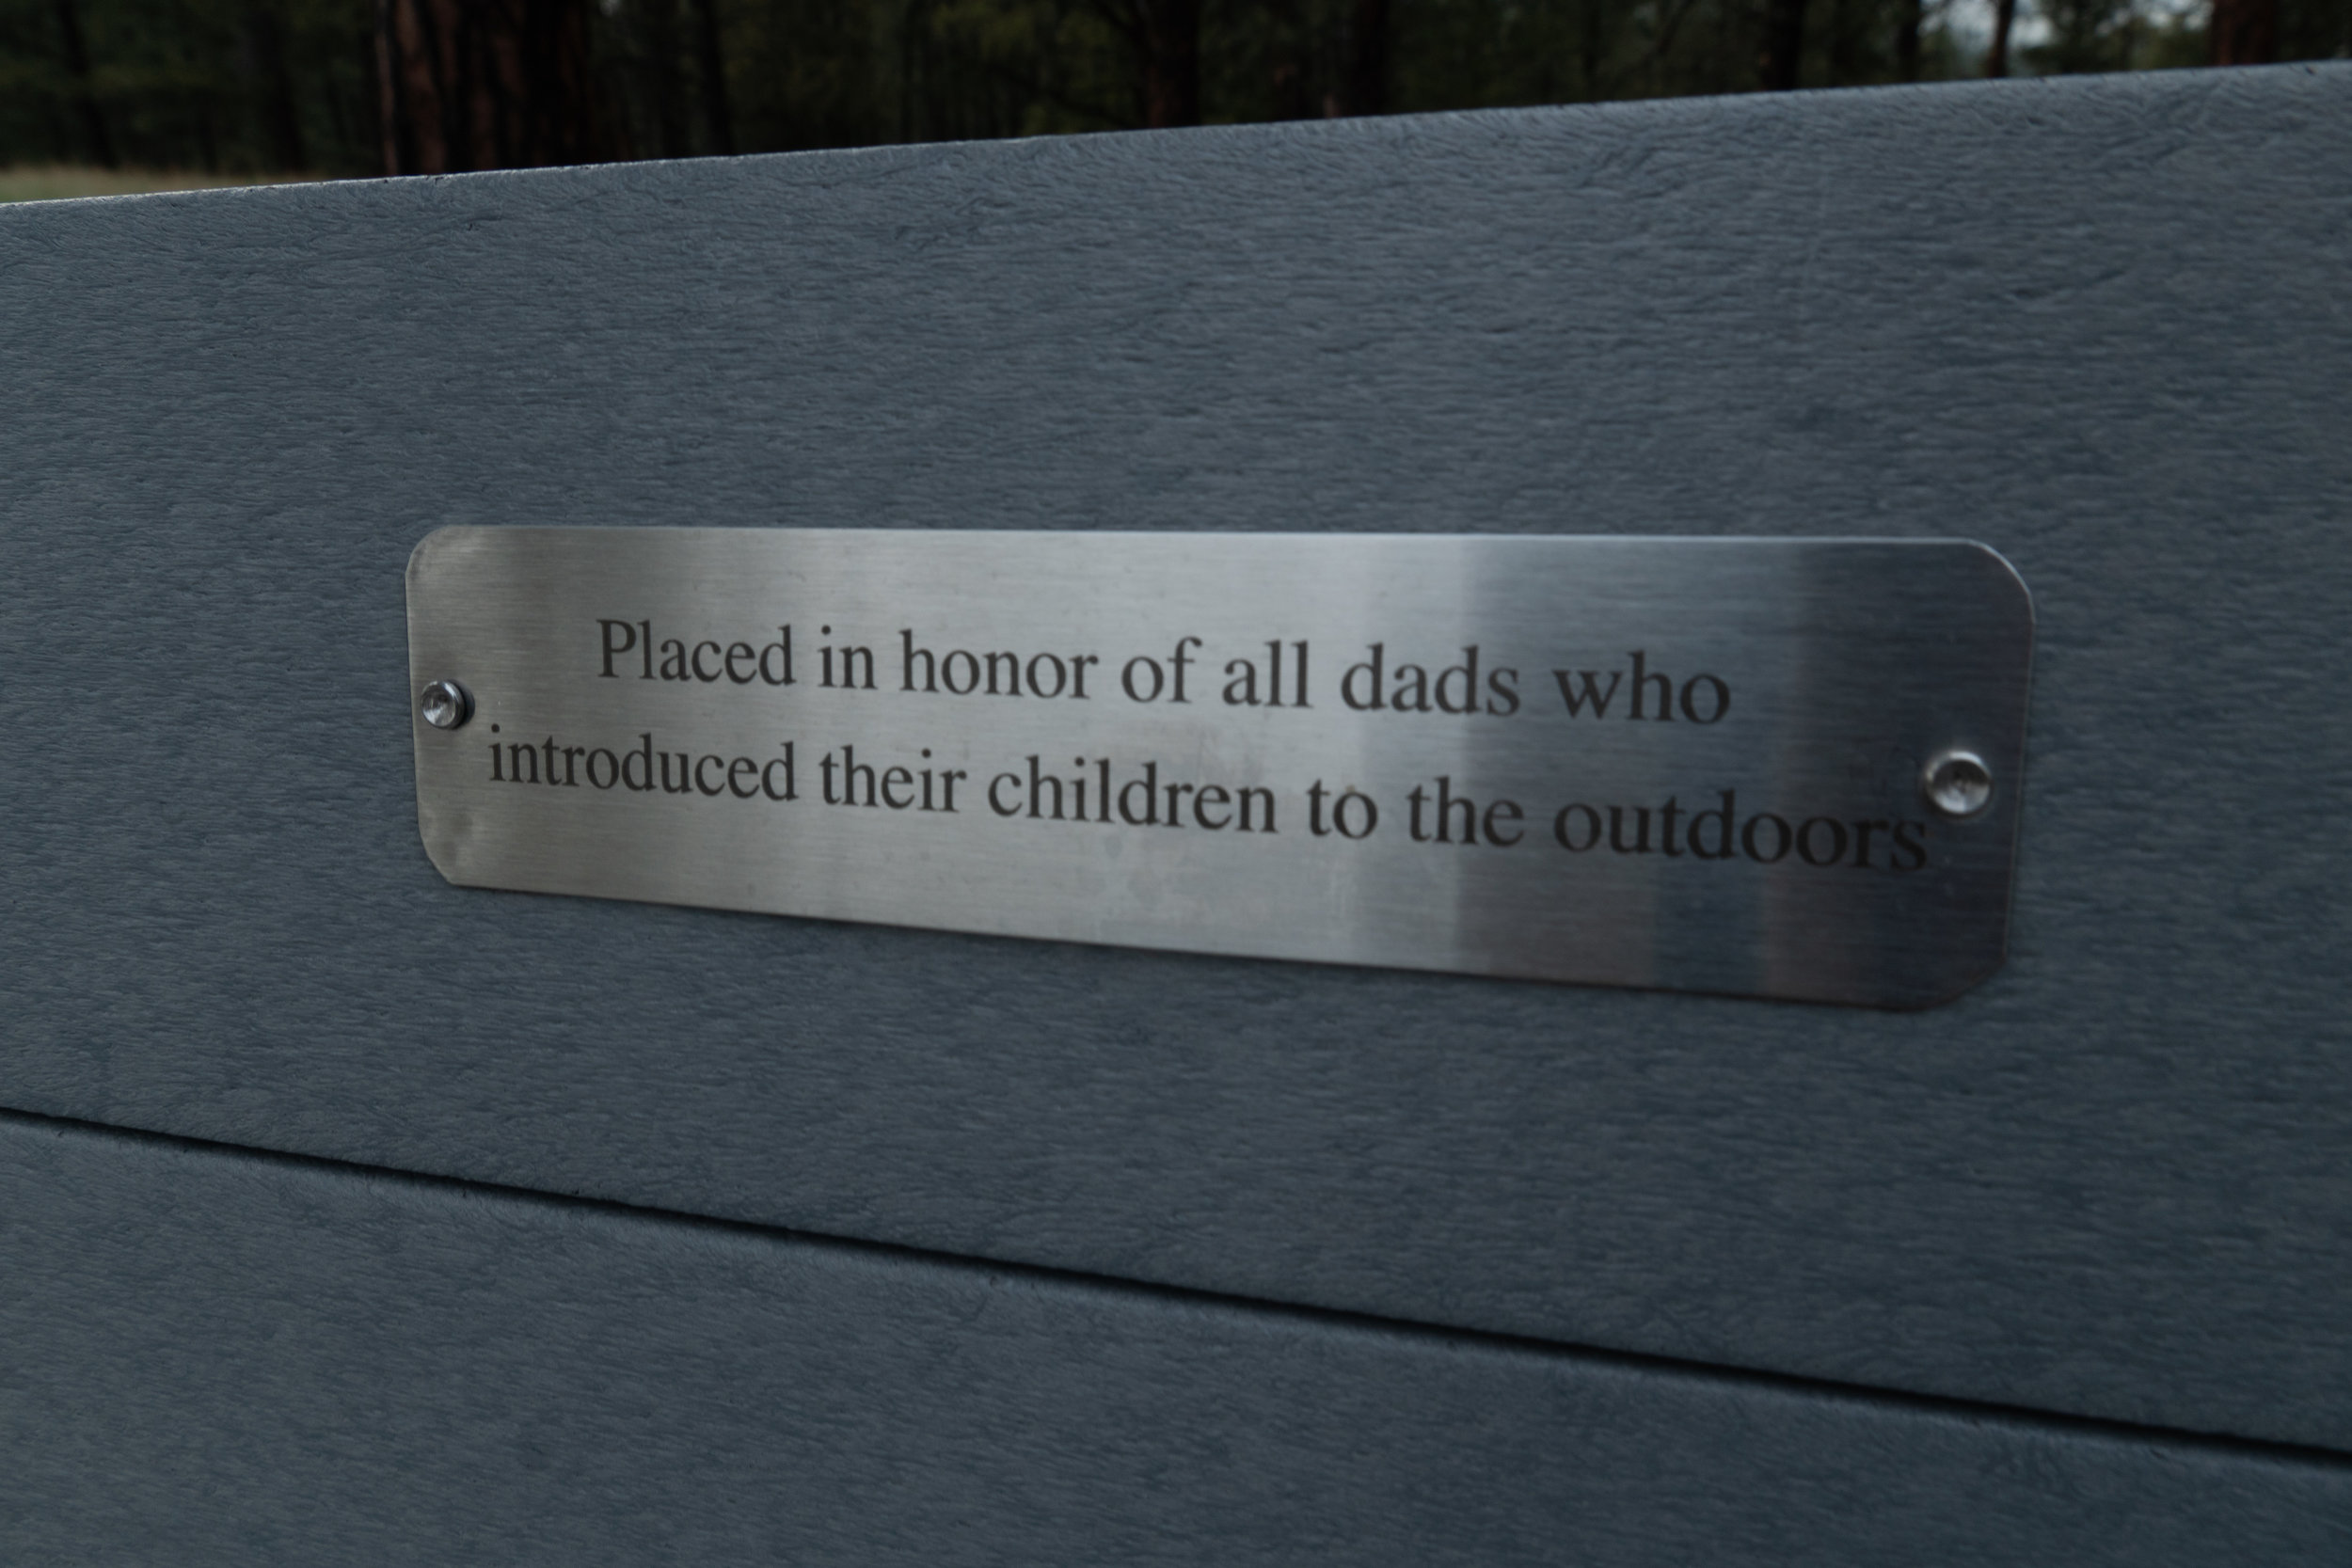 This plaque caught me off guard. Made me think of my dads influence on showing me the outdoors. I'm sure this resonates with many of you, but maybe there's some moms out there who deserve credit too. Regardless, the message is what matters. Children deserve the outdoors